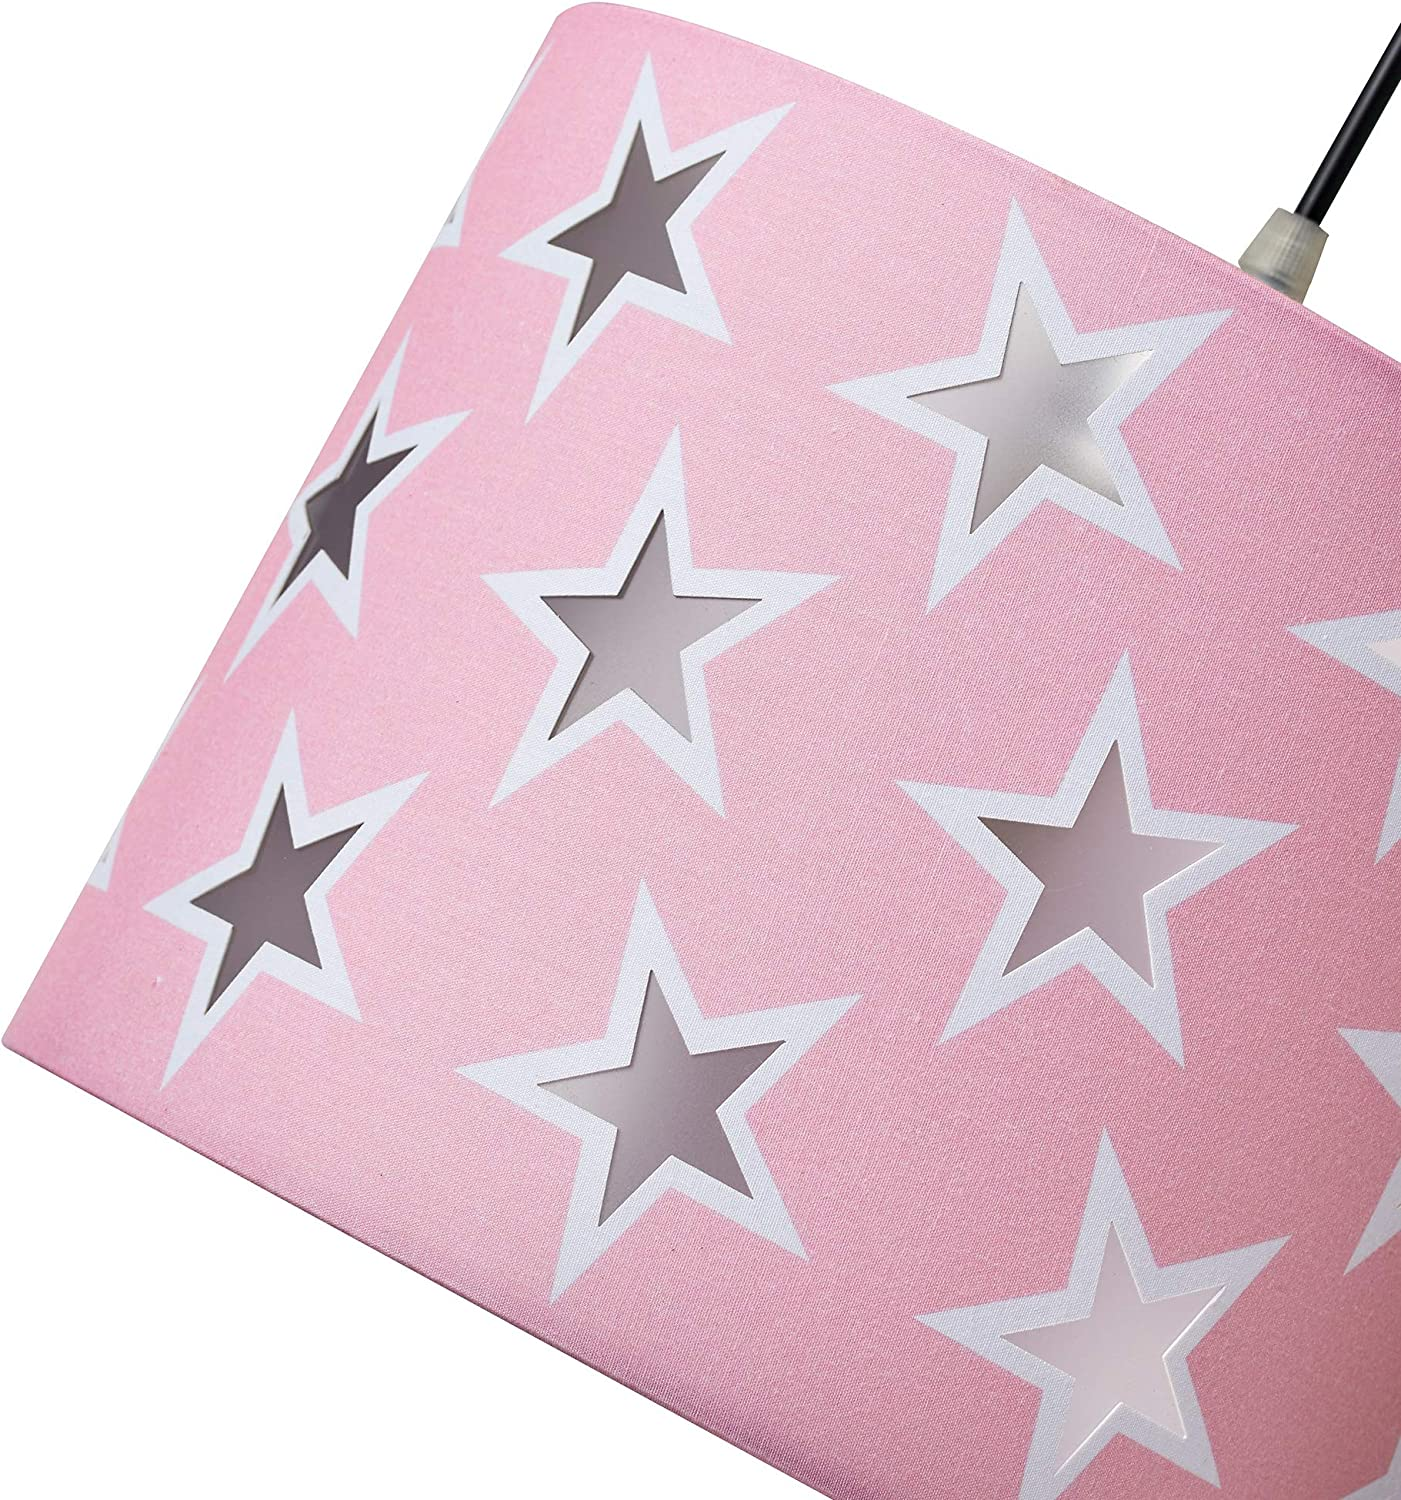 Diameter 25cm x Height 20cm Pink /& White Innoteck DS-1926 Creative Stars Decorated Children//Kids Multi-Functional Pendant //Desk //Floor Lamp Shade in Pink Twinkle Starts Diffusion Light Effect